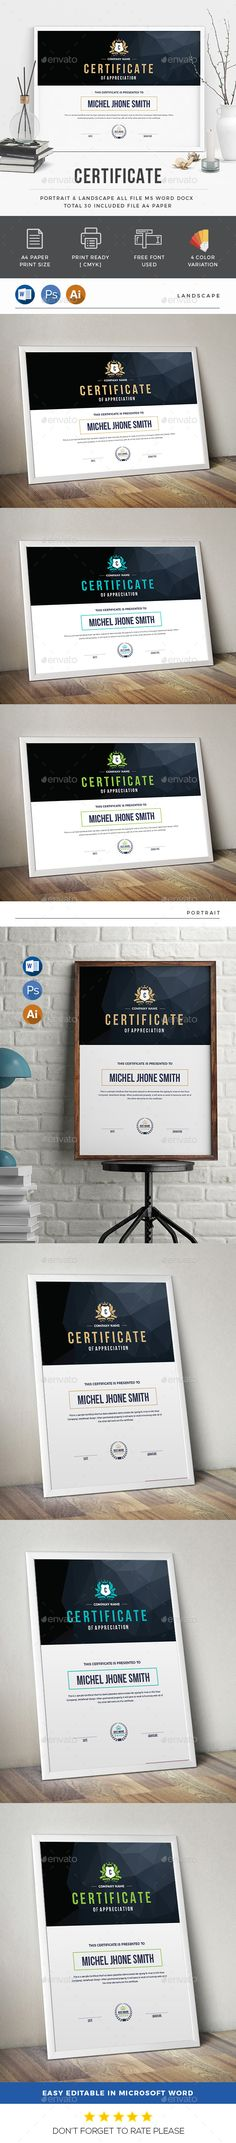 Certificate by generousart Features of Certificate Template Color VersionsA4 Paper Size With Bleeds Quick and easy to customize templatesChange Customize eas